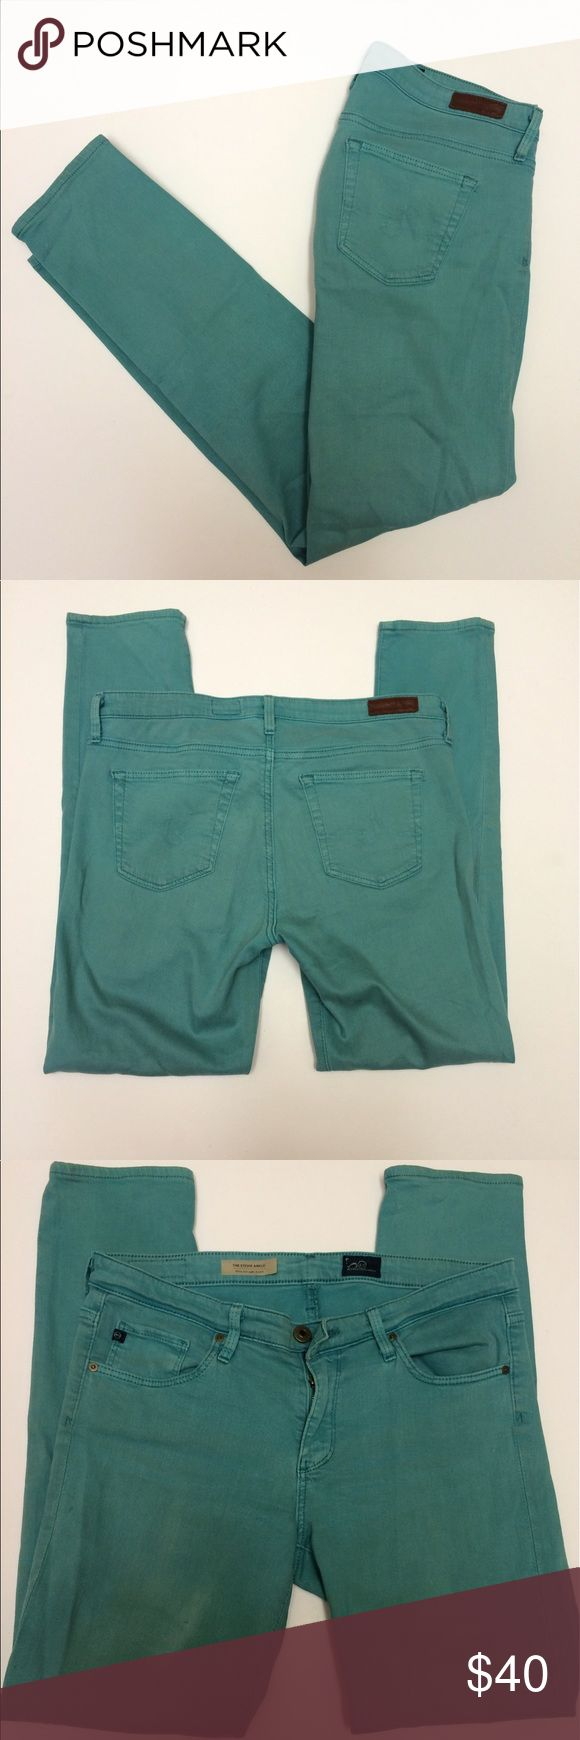 """AG """"The Stevie"""" Teal Skinny Jeans AG """"The Stevie""""  Slim straight ankle jeans  Teal color 8"""" rise  27"""" inseam  Size 29R  They are patched on the inside - see last photo - not visible from the exterior! Ag Adriano Goldschmied Jeans Skinny"""